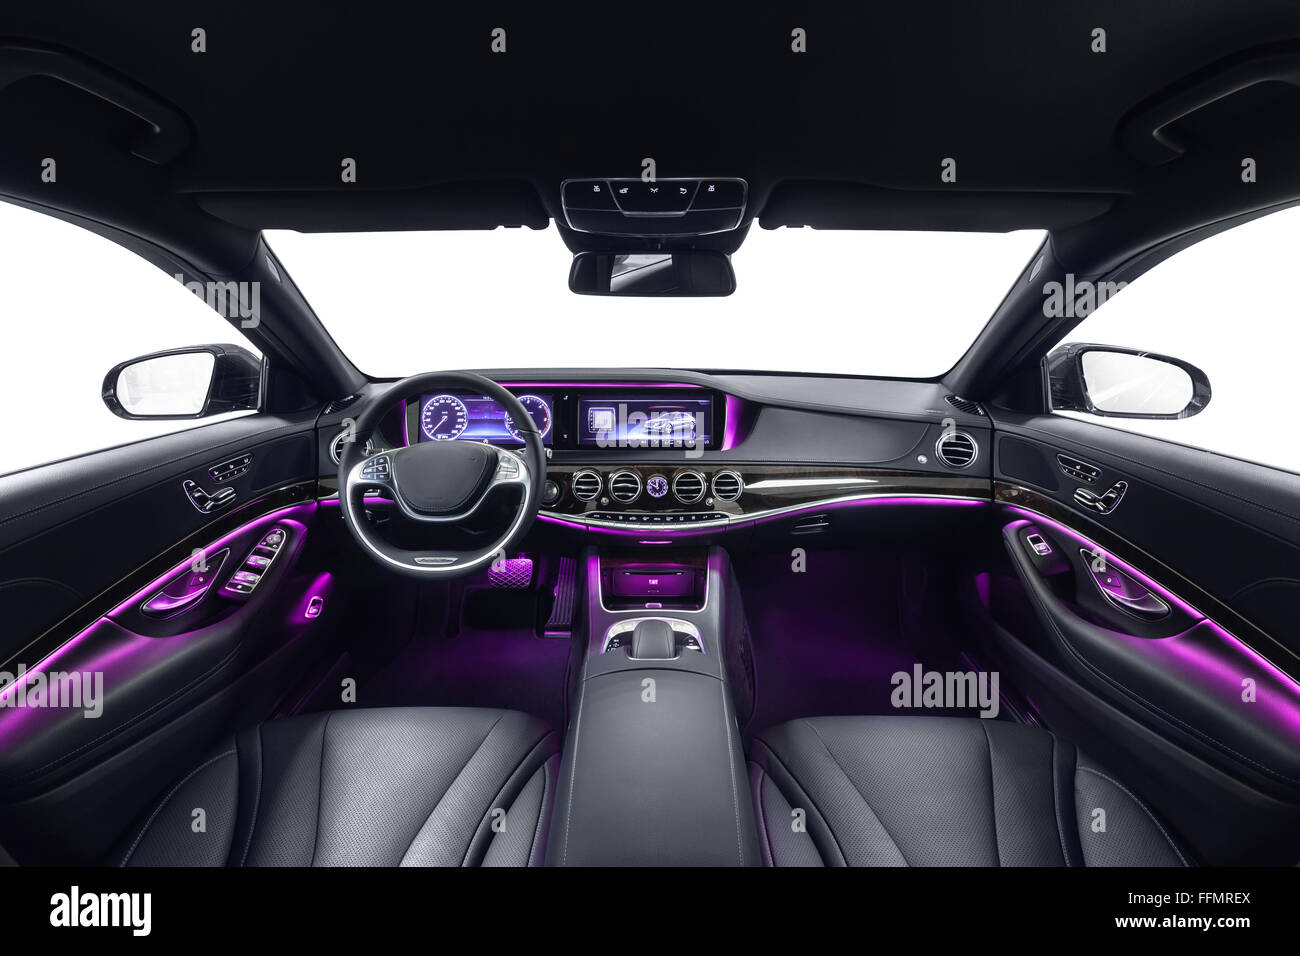 Dash Designs Car Interior Shop Of Car Interior Luxury Black Seats With Violet Ambient Light